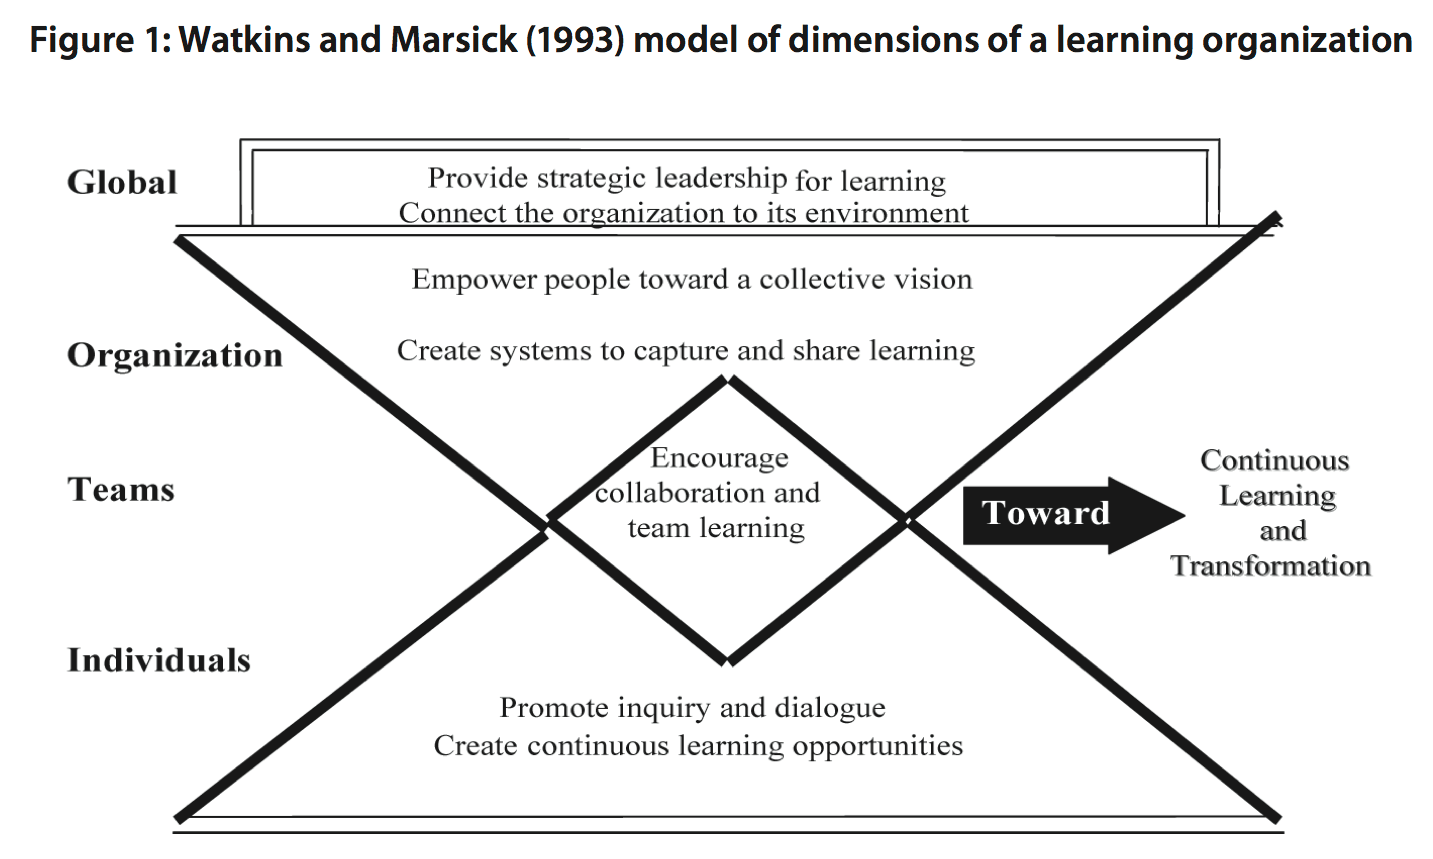 Watkins and Marsick dimensions of a learning organization